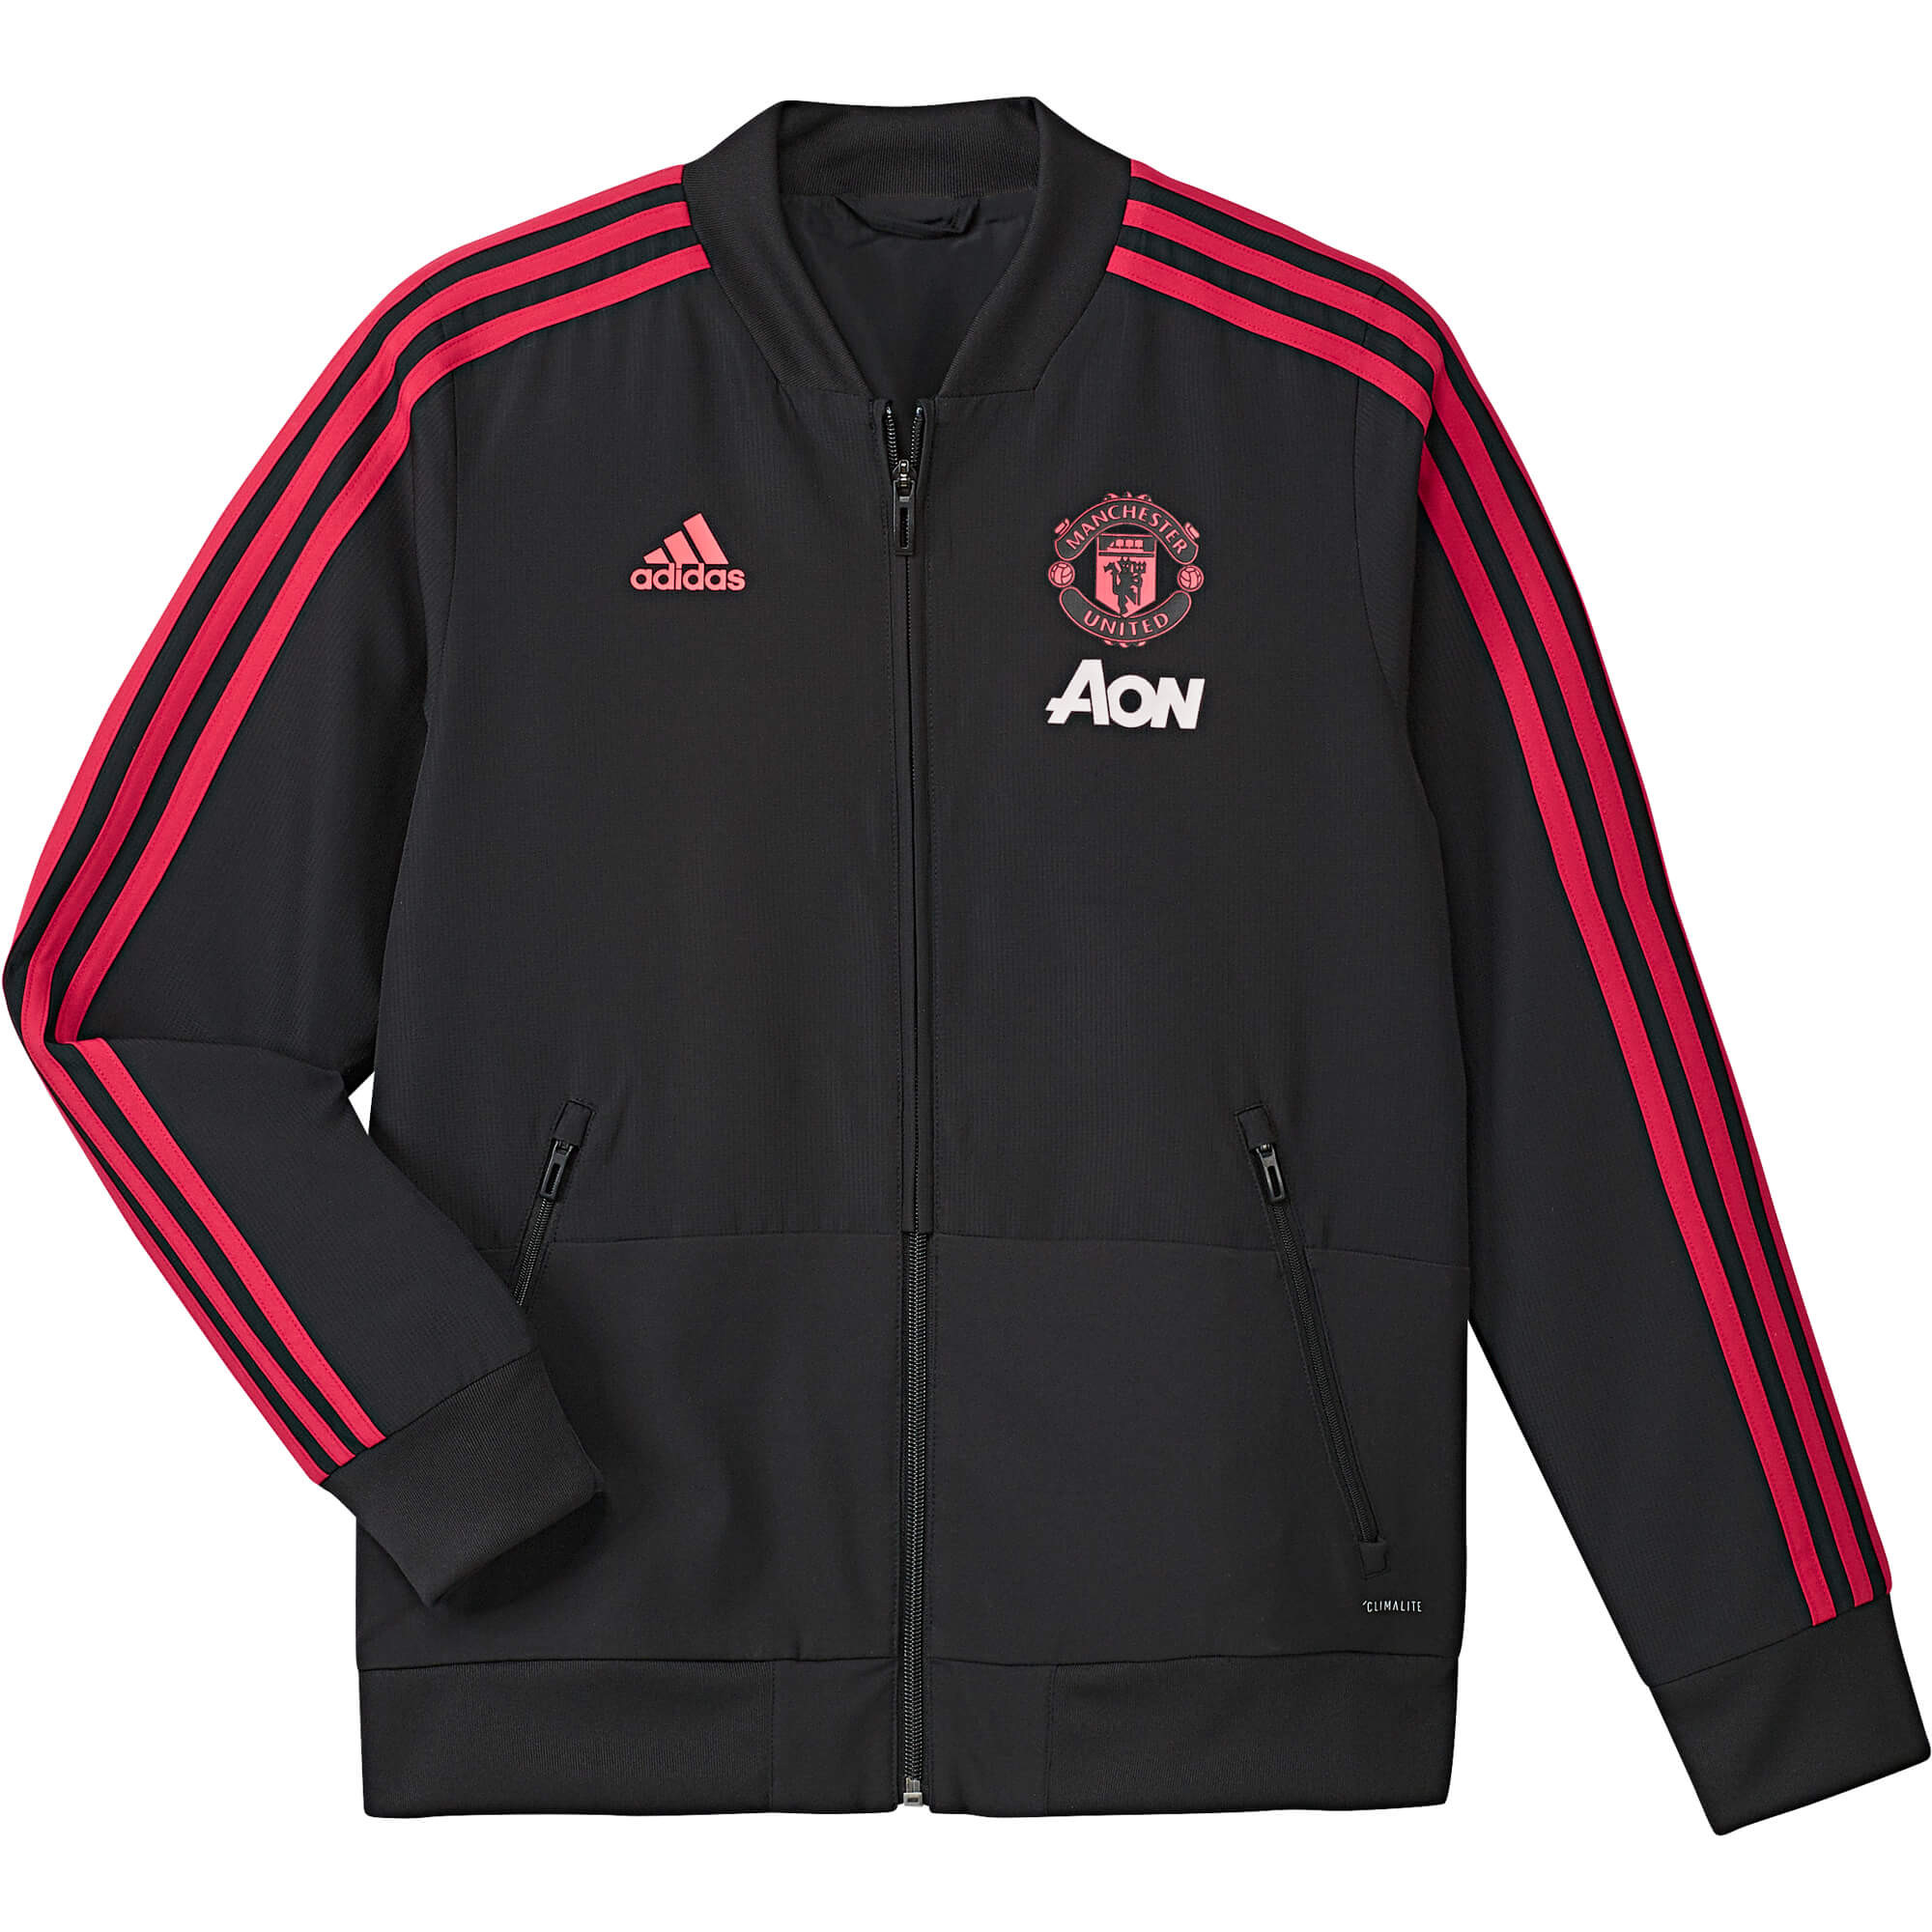 ADIDAS MANCHESTER UNITED VESTE DE SURVETEMENT JUNIOR NOIR 2018 2019 ... 108e4c9a591